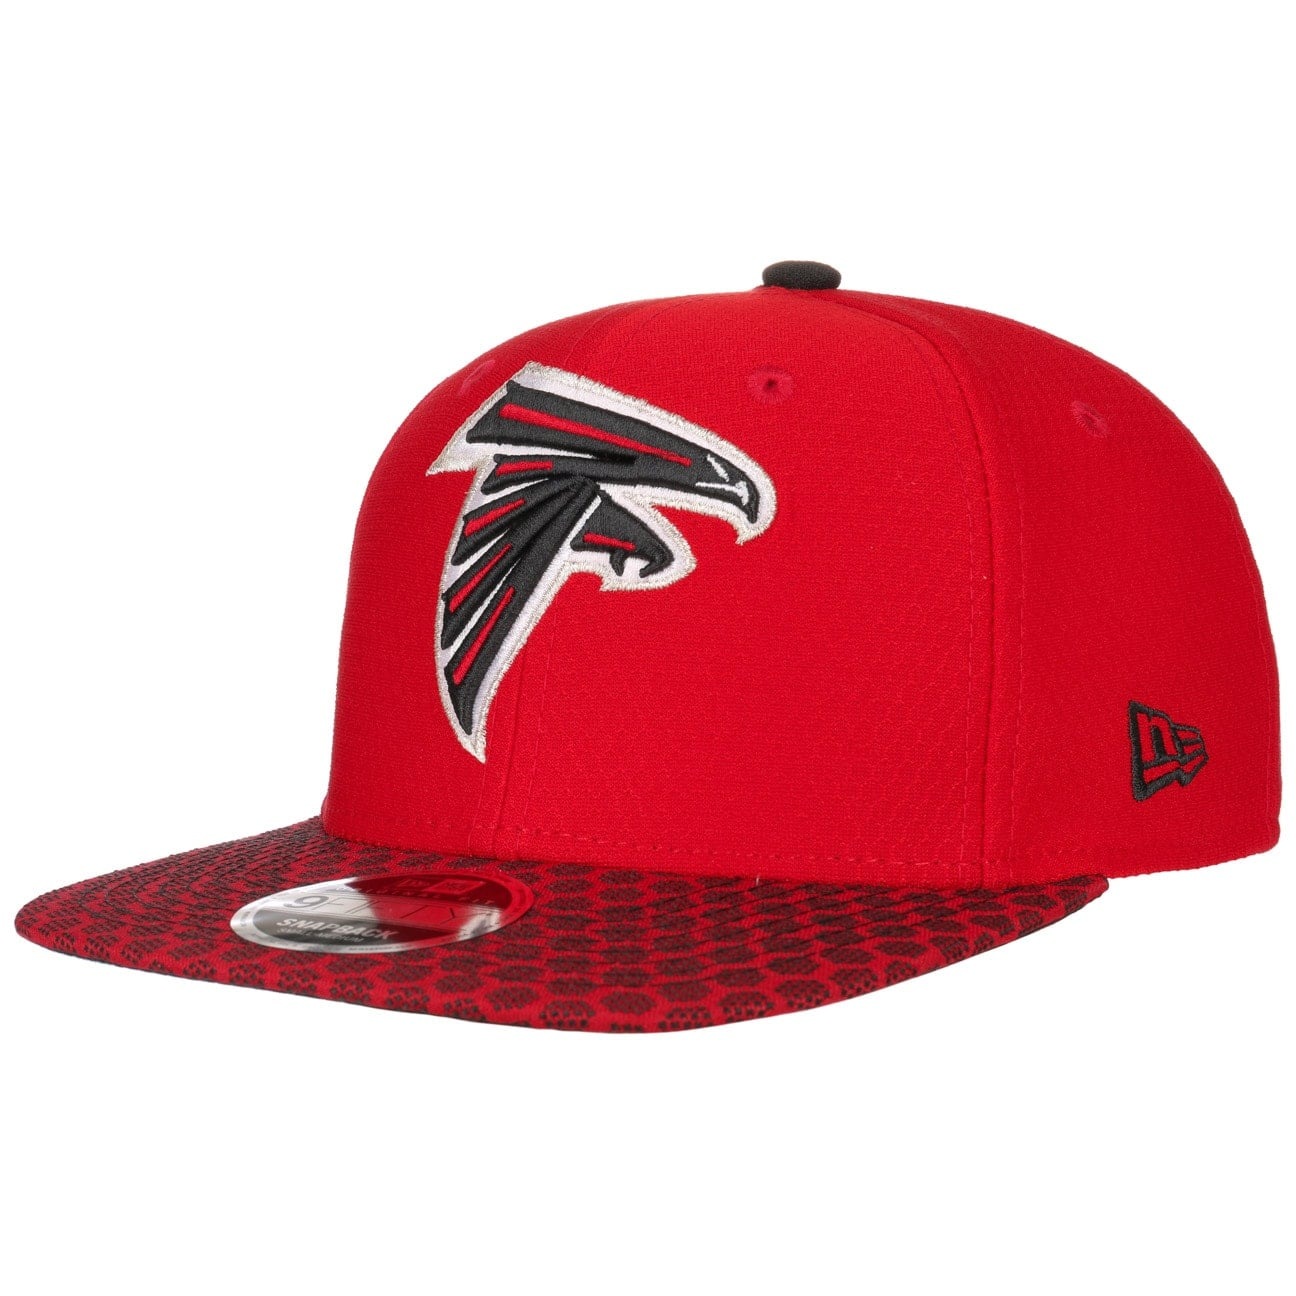 gorra-9fifty-onf-falcons-by-new-era, 24.95 EUR @ sombreroshop-es